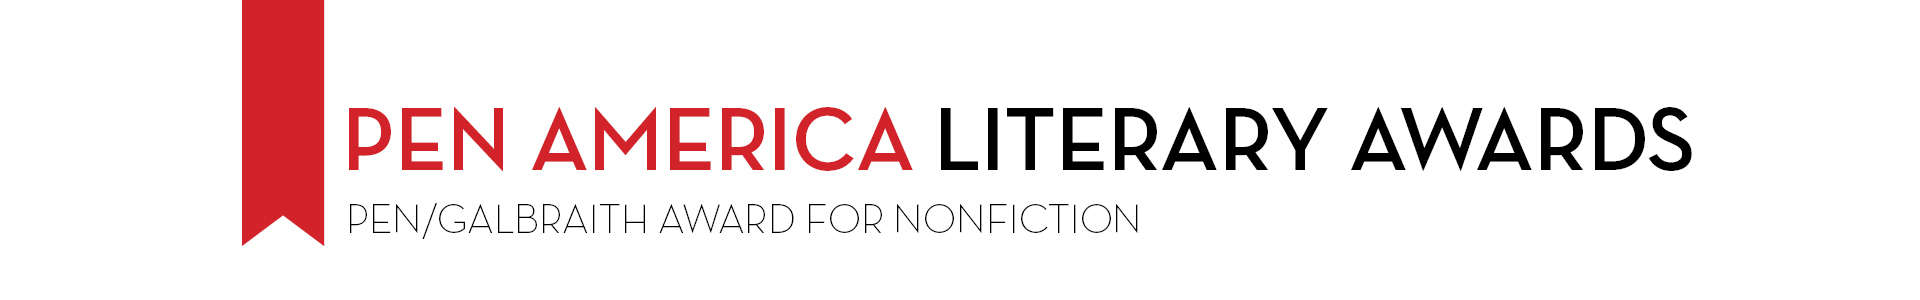 PEN America Literary Awards PEN/Galbraith Award for Nonfiction